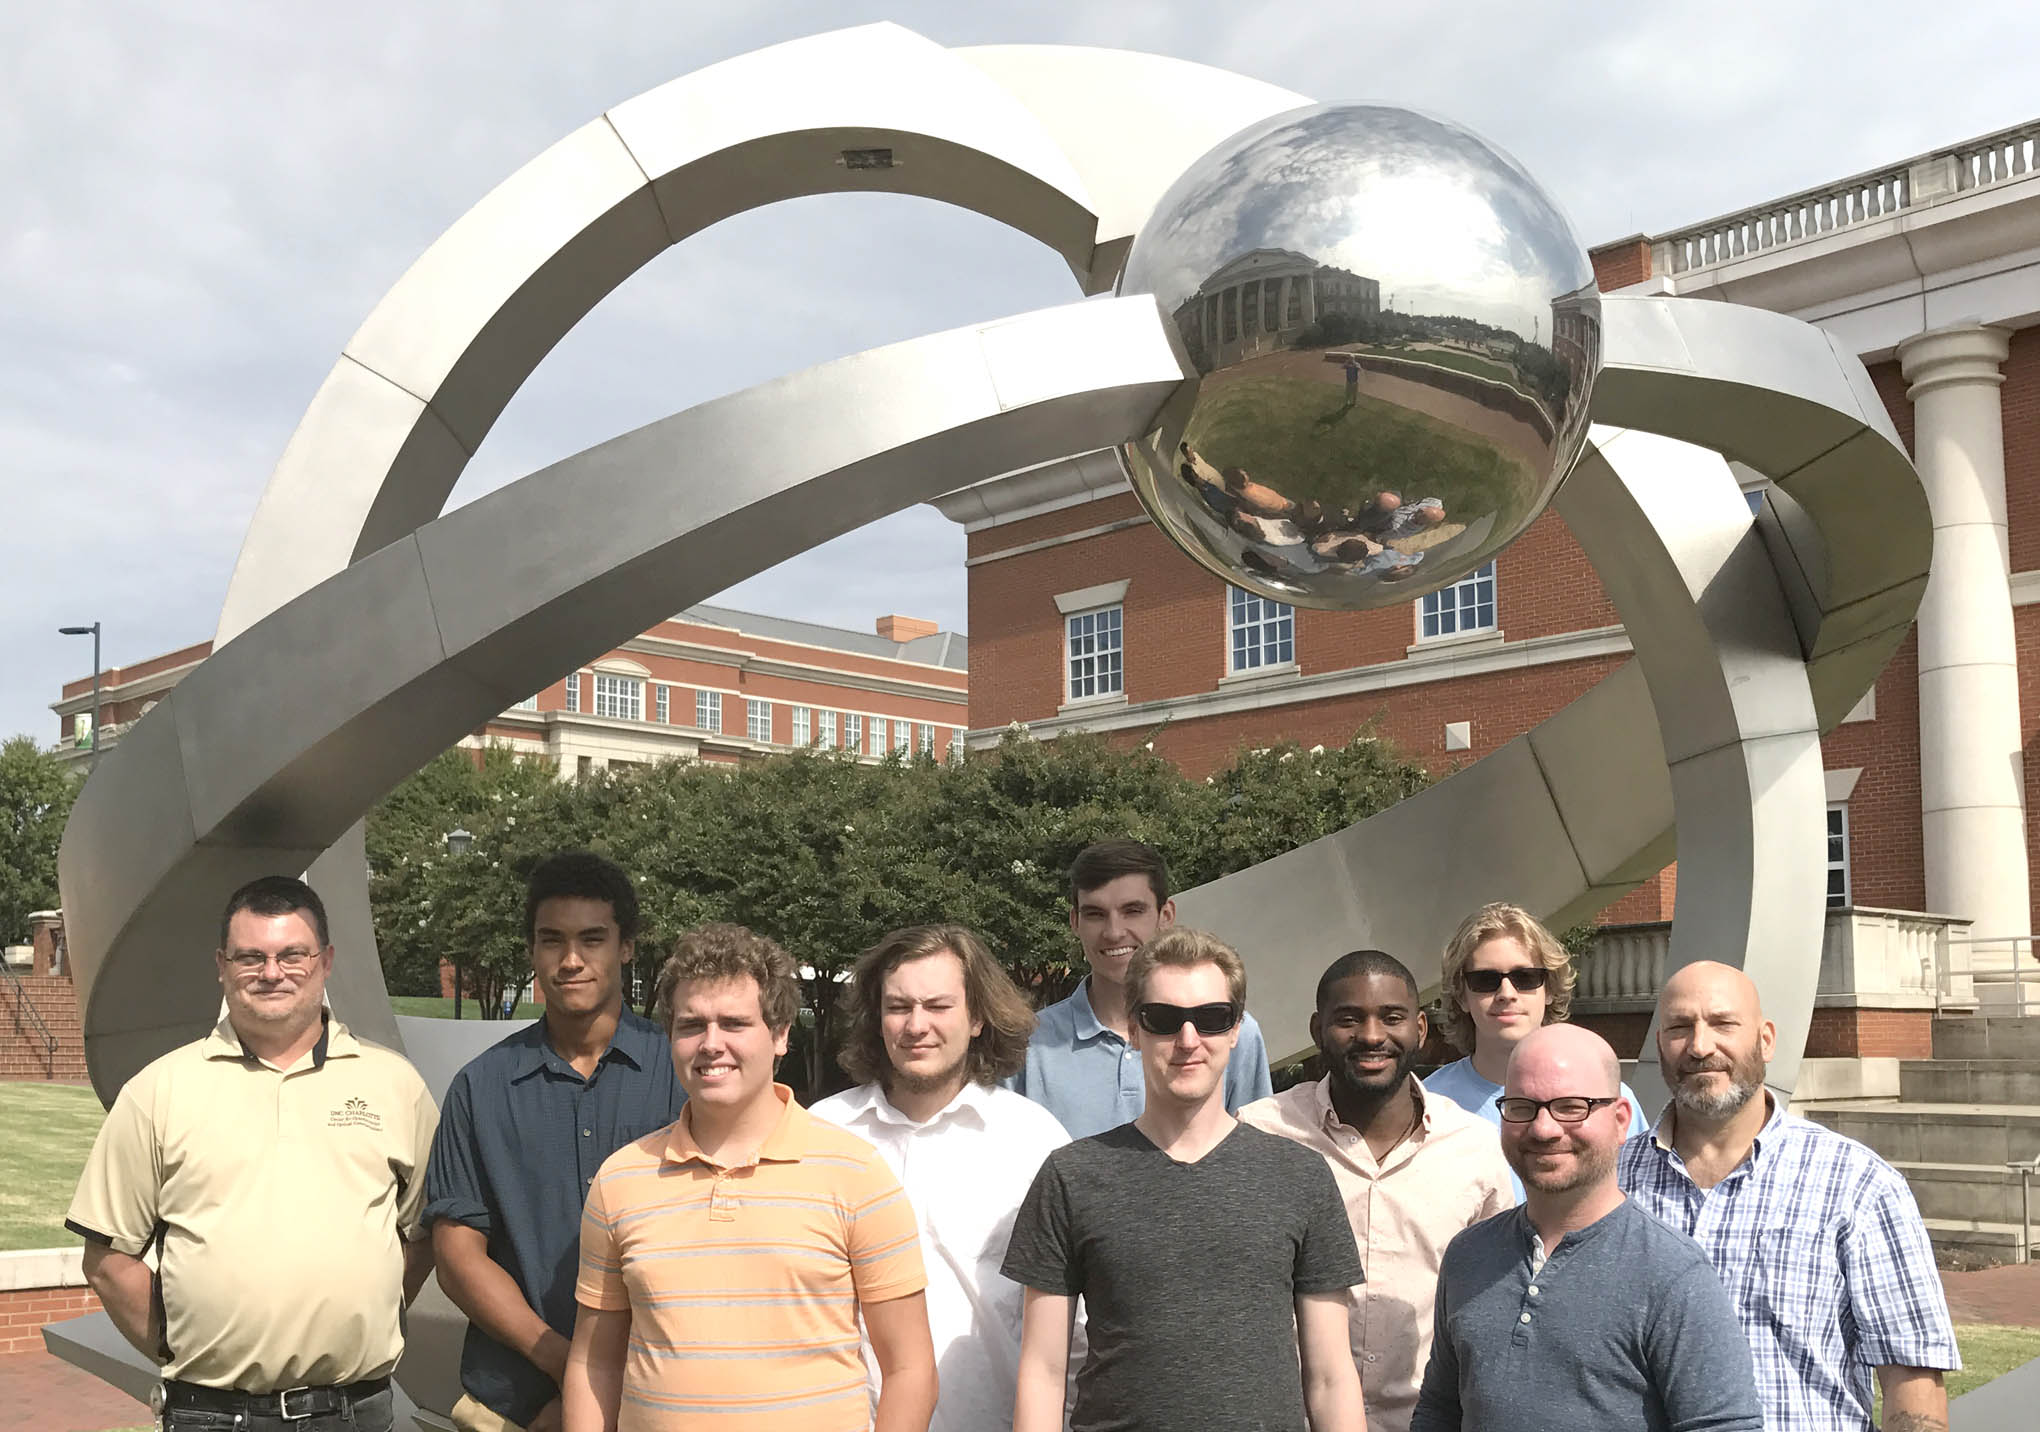 Click to enlarge,  Touring the Optics Research Center on the University of North Carolina at Charlotte's campus were, left to right: Scott Williams (Assistant Director of the Center, who is an advisor to the CCCC LPT program), Brandon Pasley Disher, Derrick Kuhl, Darin Anderson, Cody Flowers, Michael Kropp, Jamal Robinson, Seth Kuenzler, Nickolas Jorgenson, and Richard Dickens.